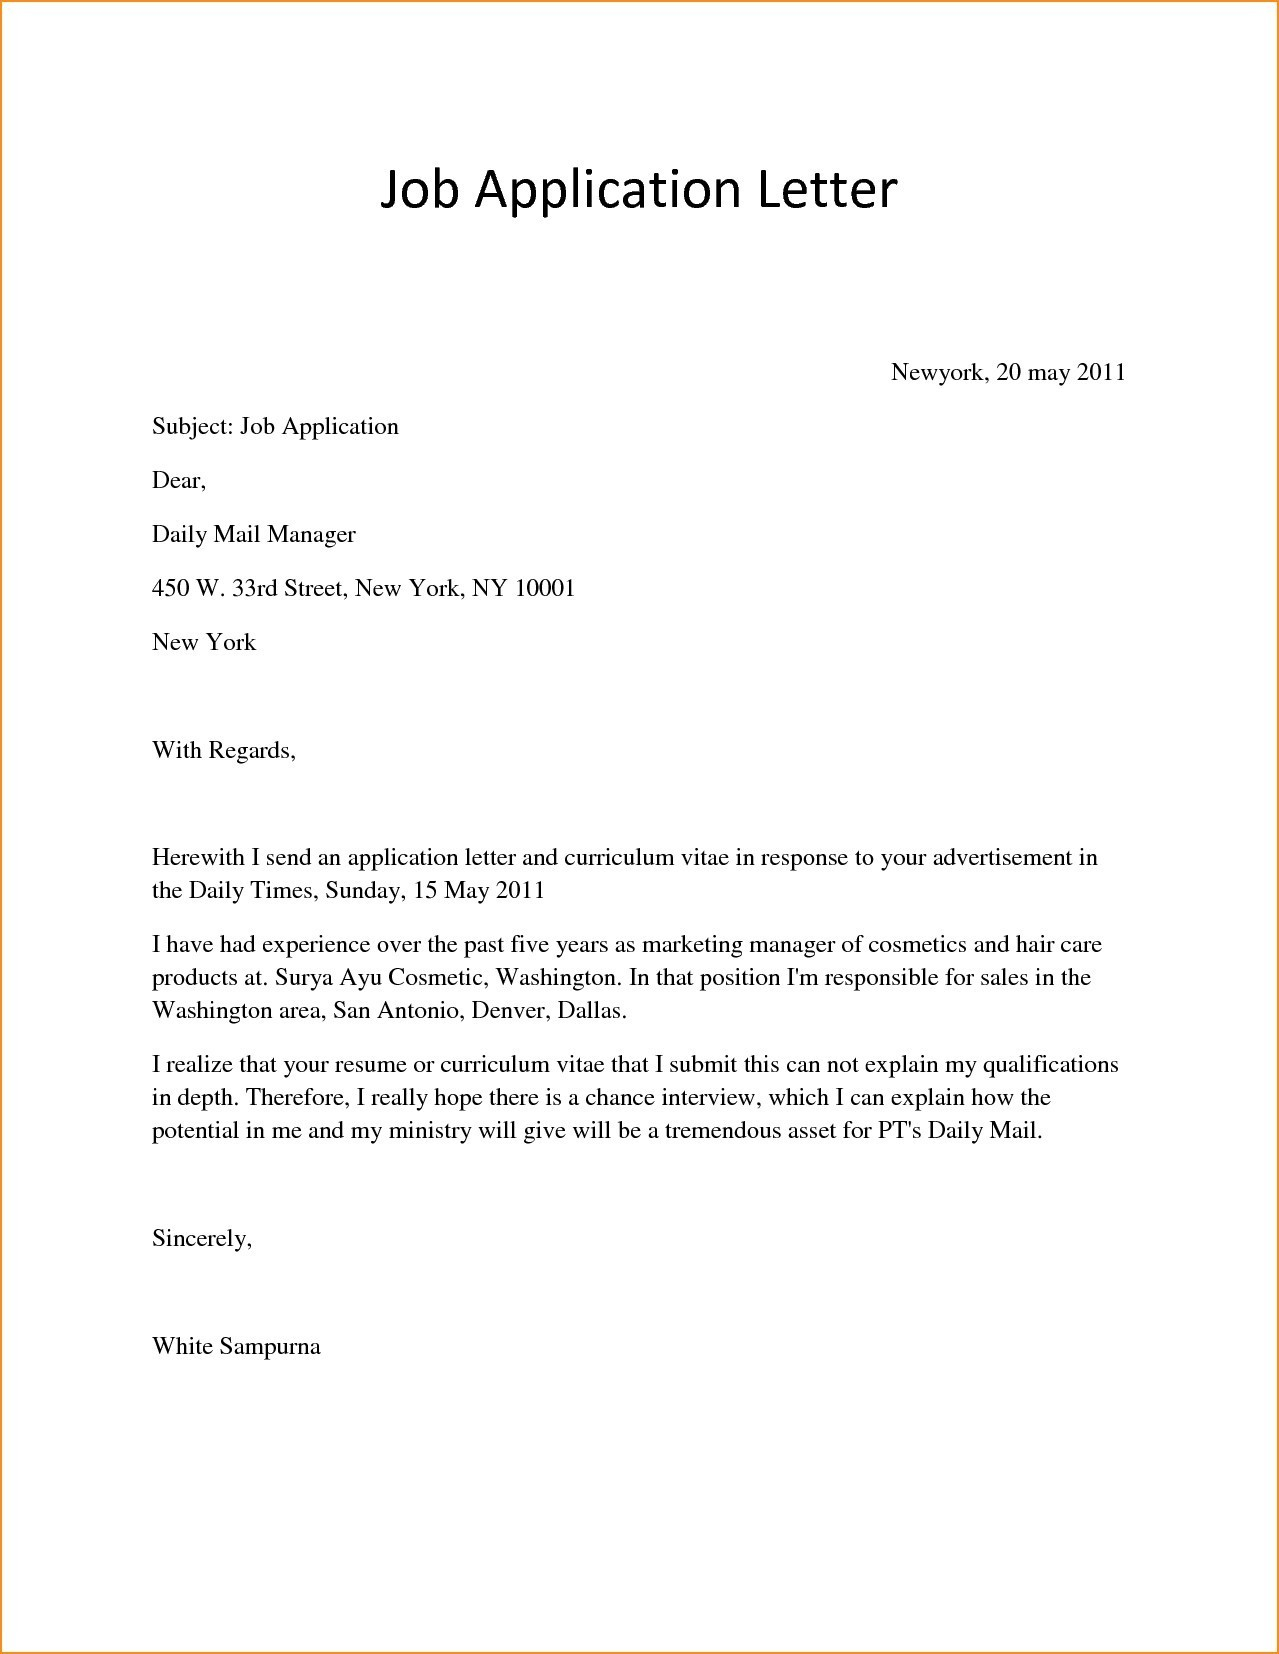 opt job offer letter template samples